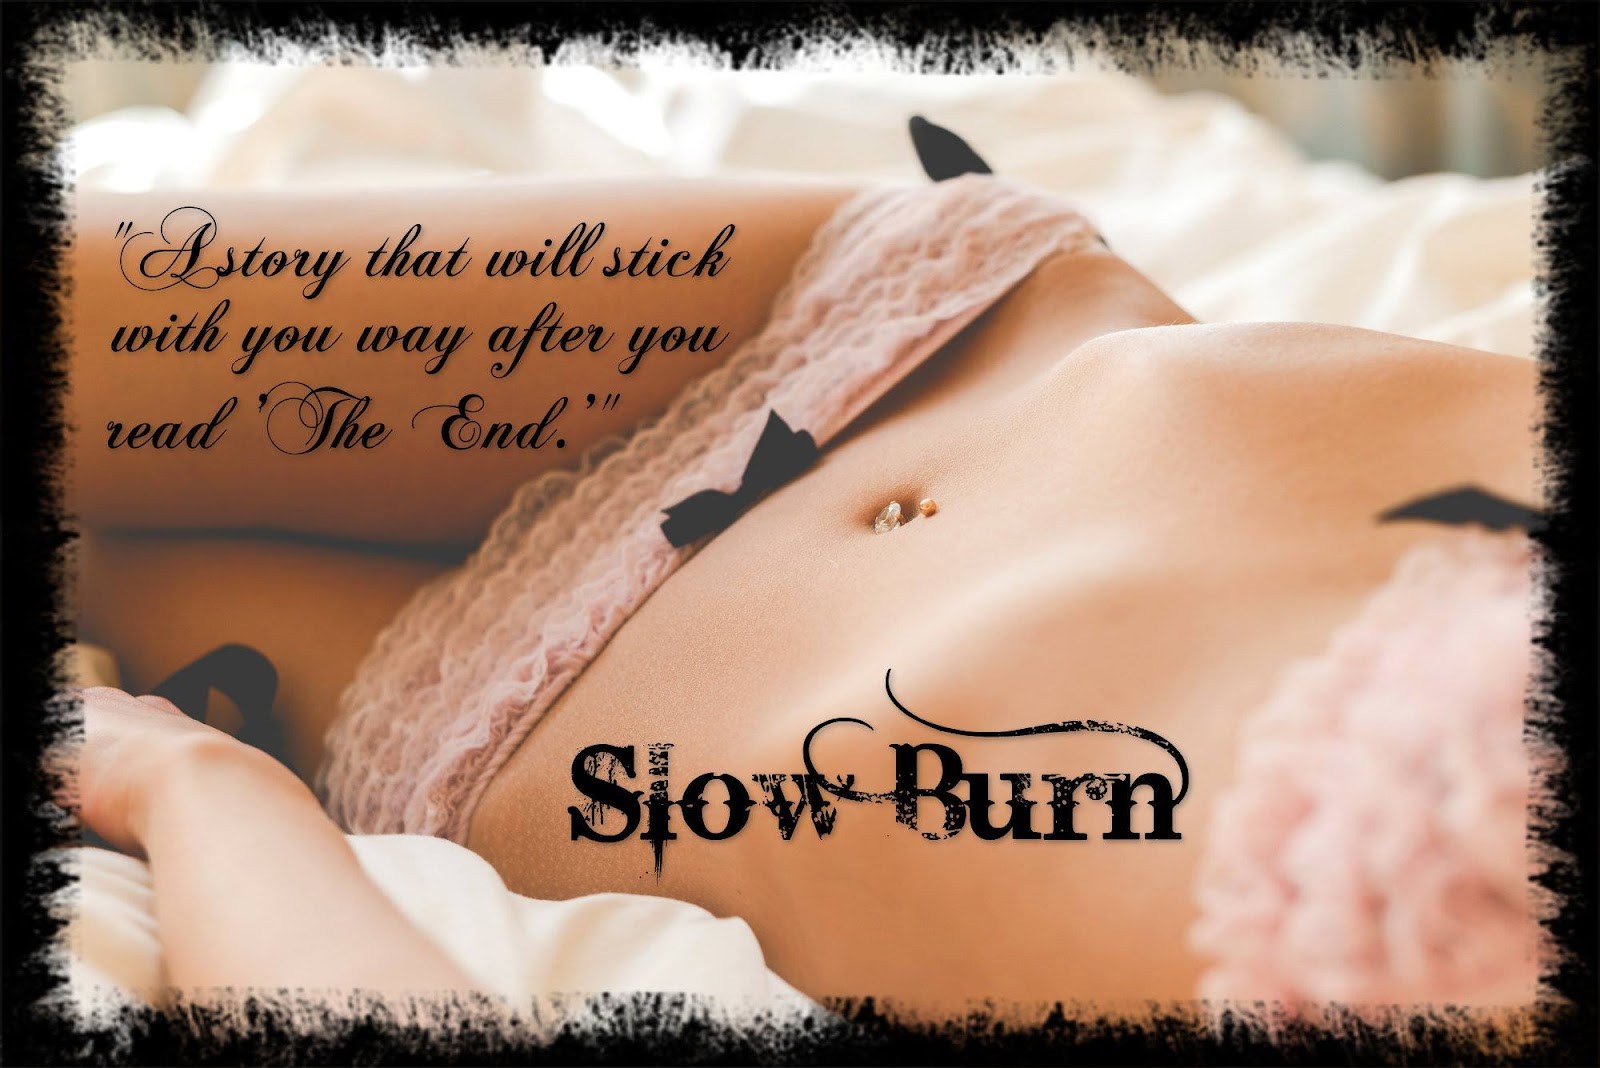 slow burn teaser 3.jpg